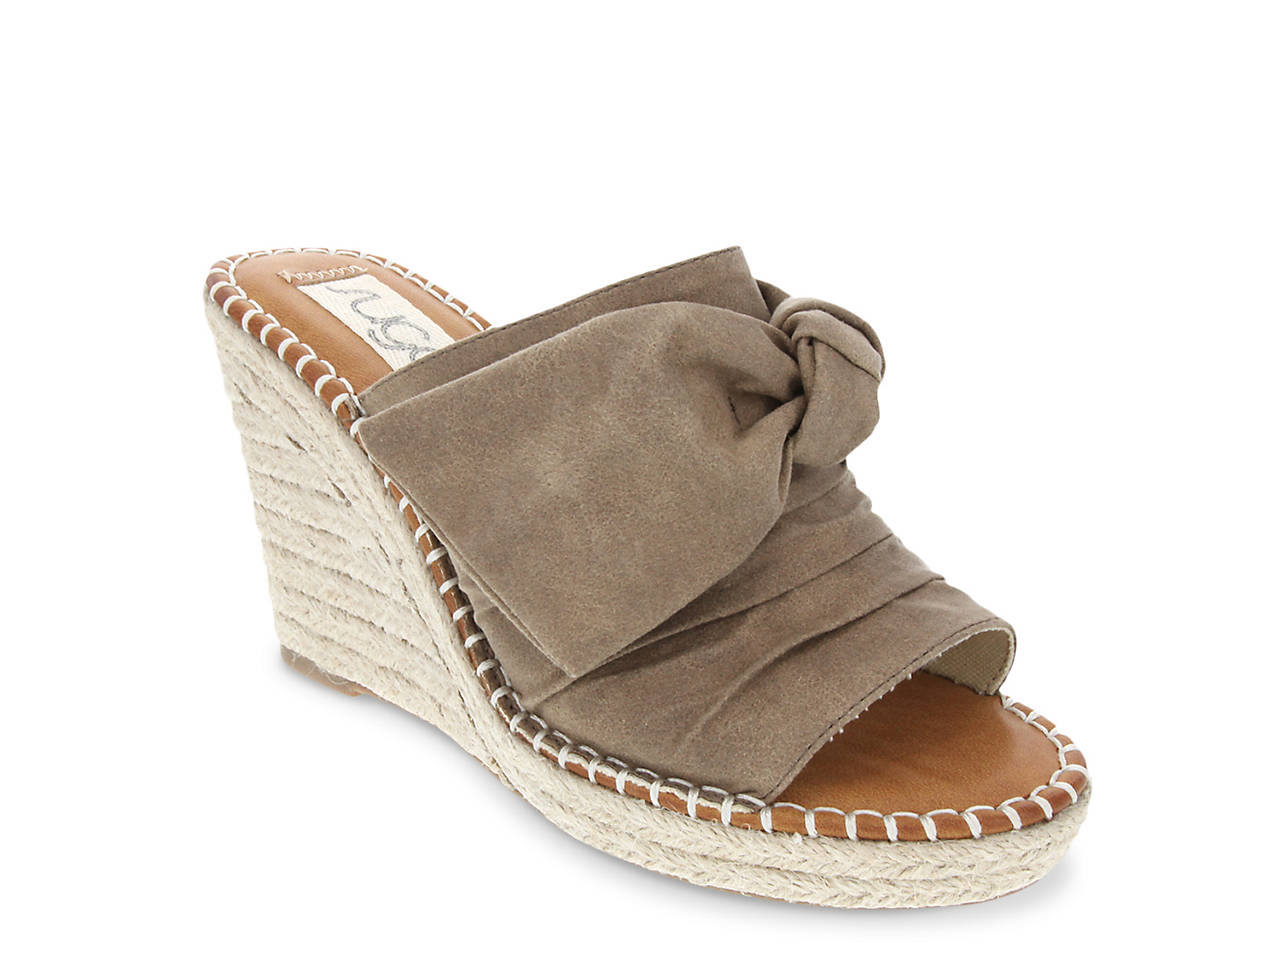 769133a74db2 Sugar Hundreds Espadrille Wedge Sandal Women s Shoes